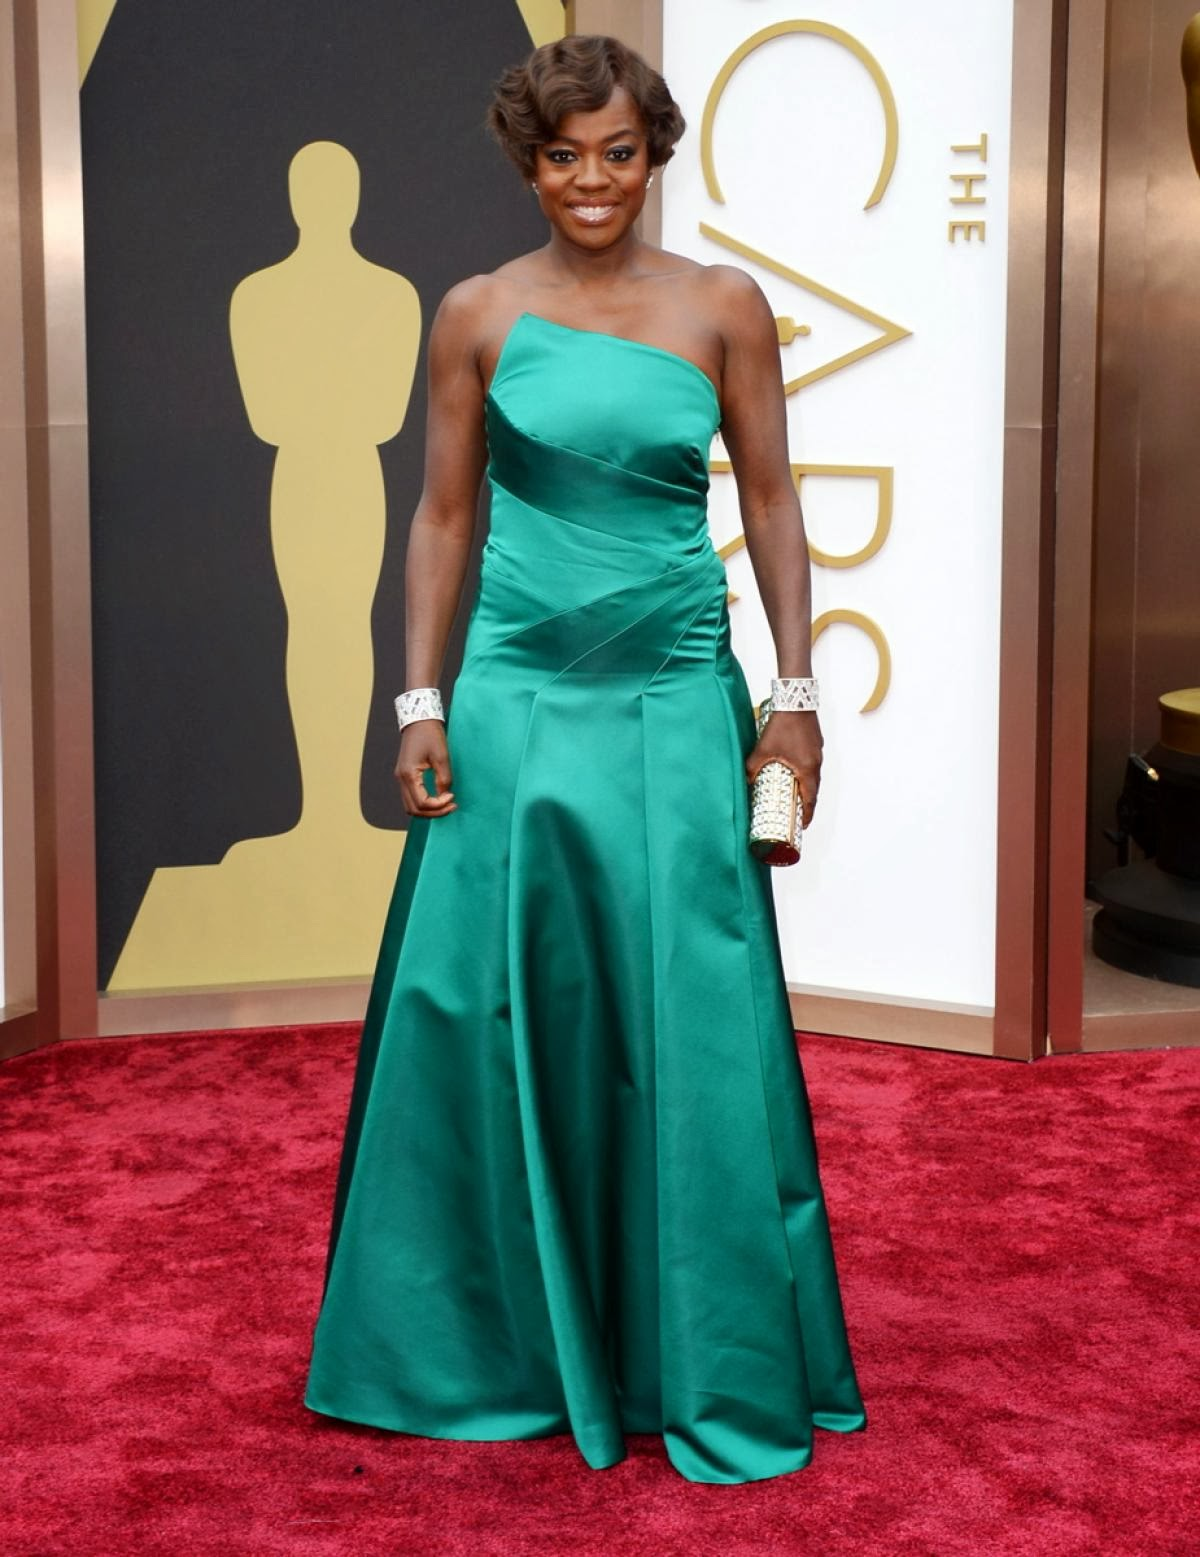 Viola Davis in Escada, Oscars 2014, Academy Awards